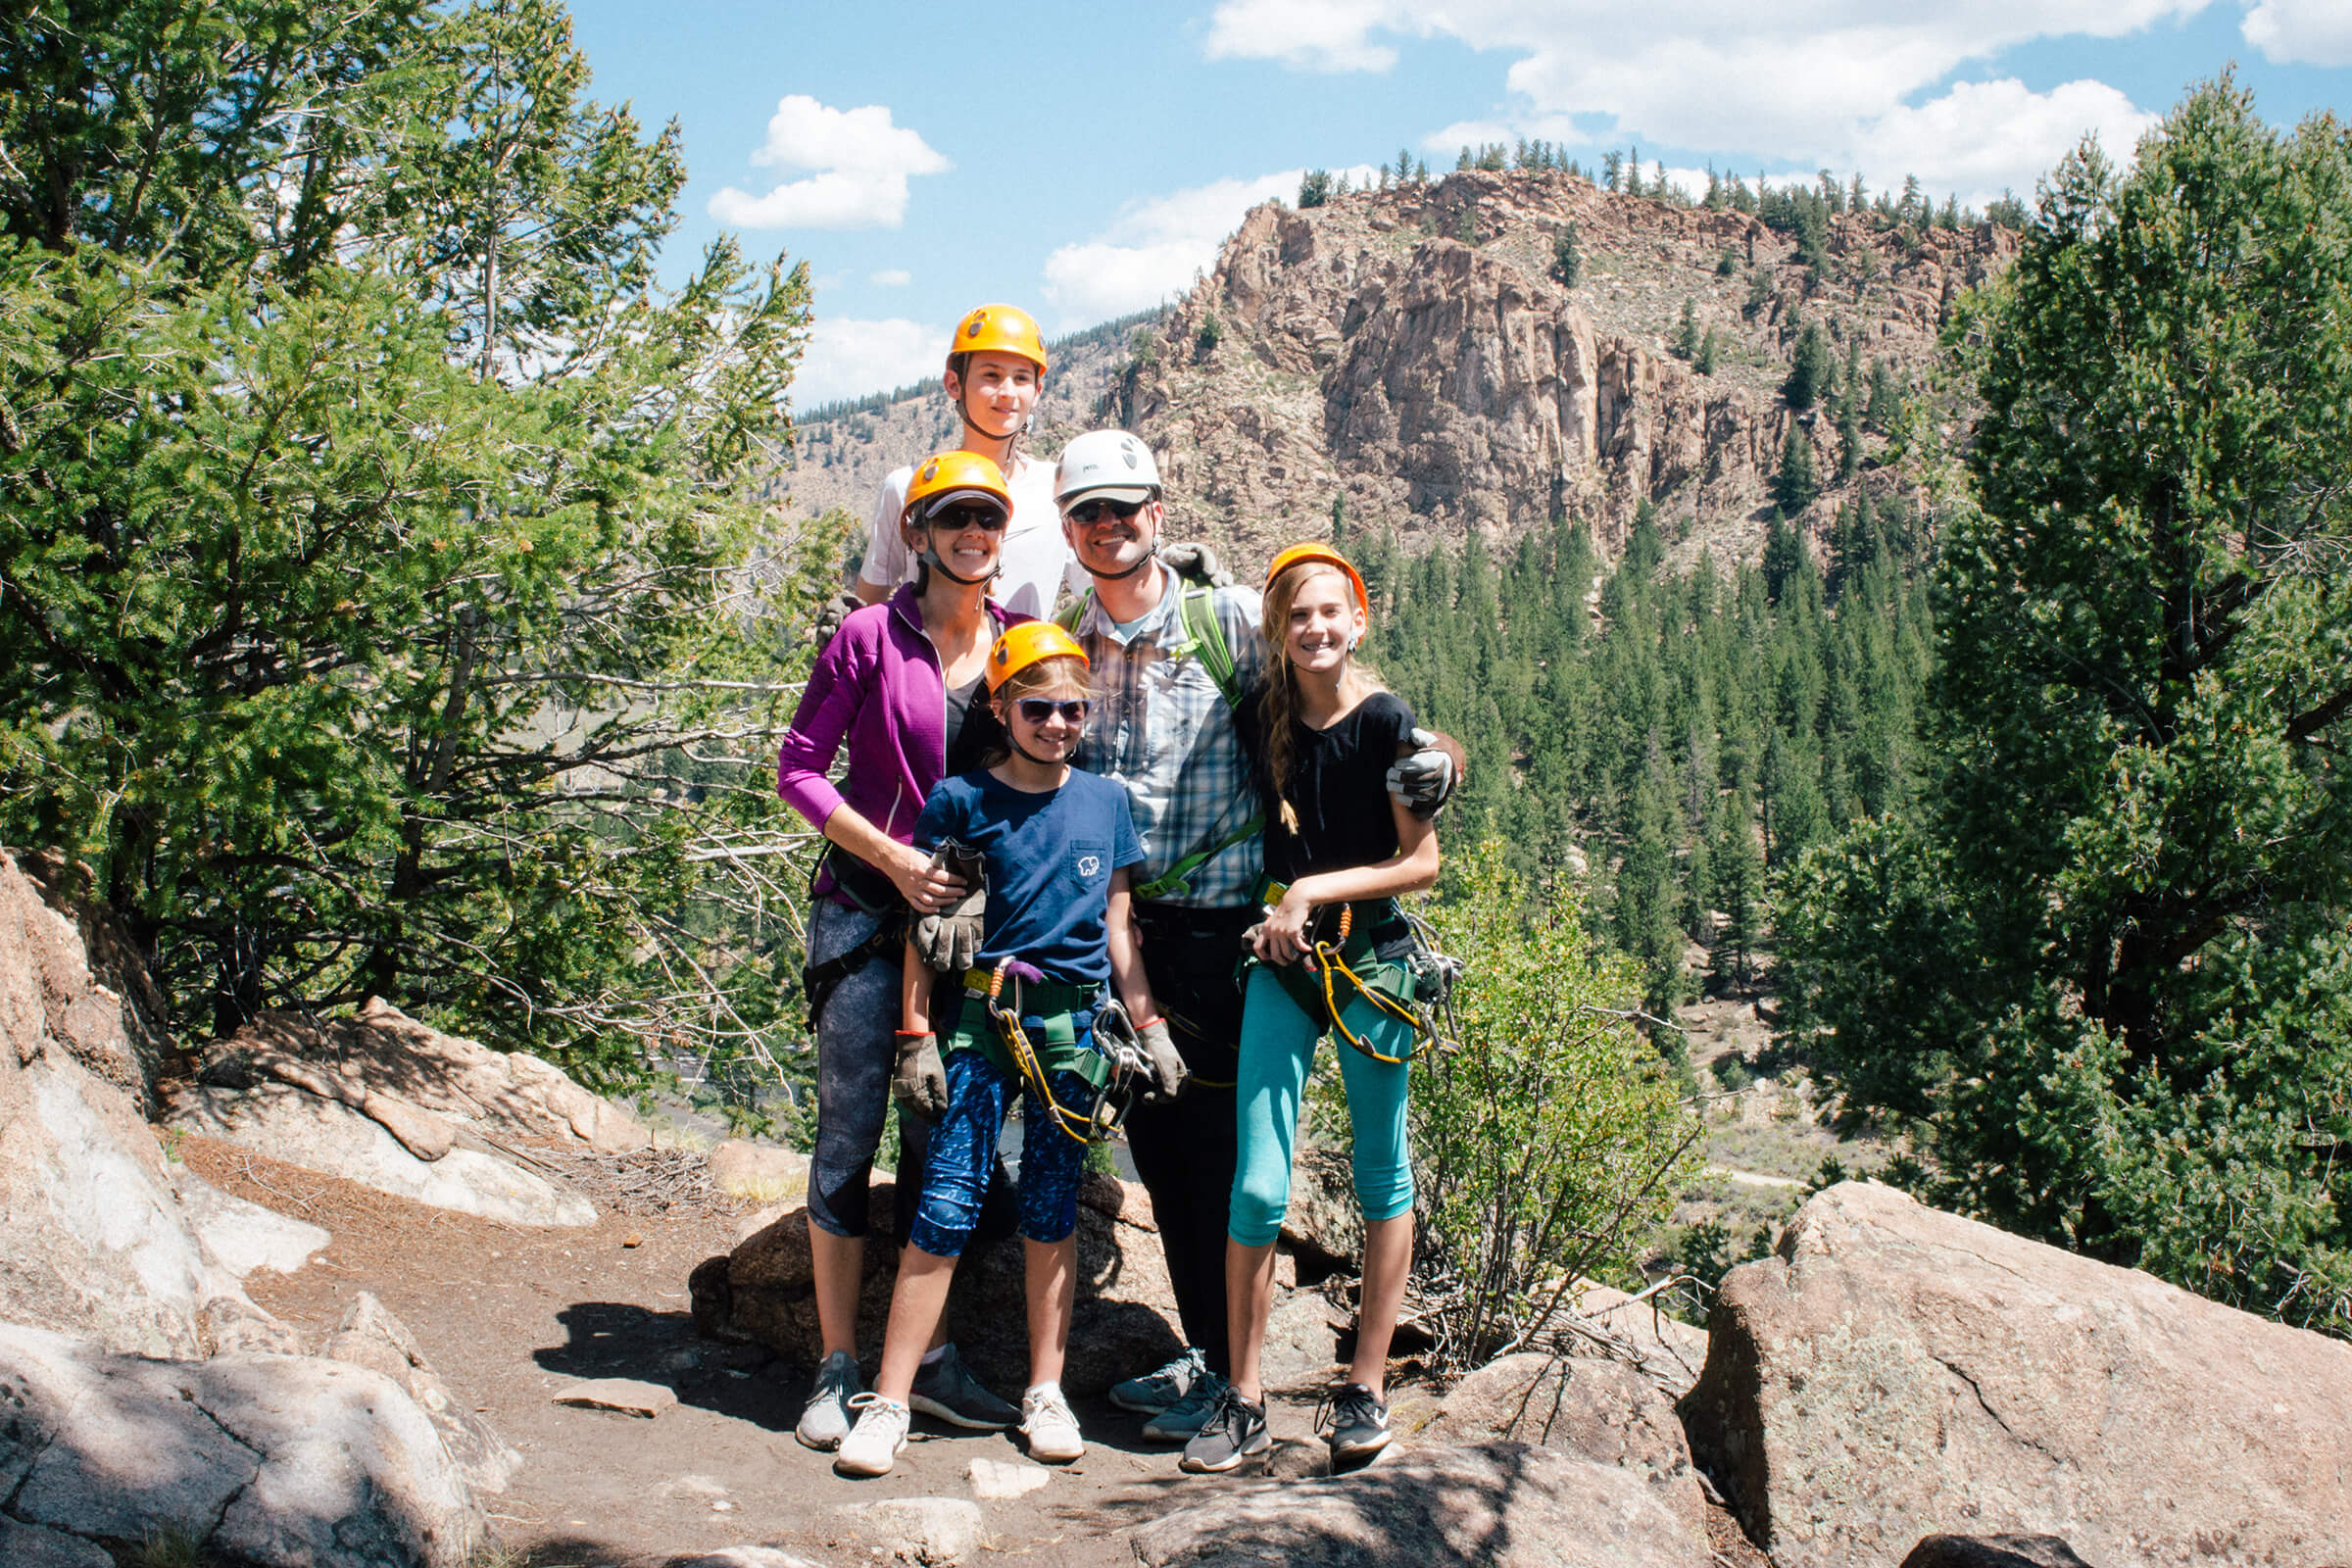 Family Zipline in Colorado